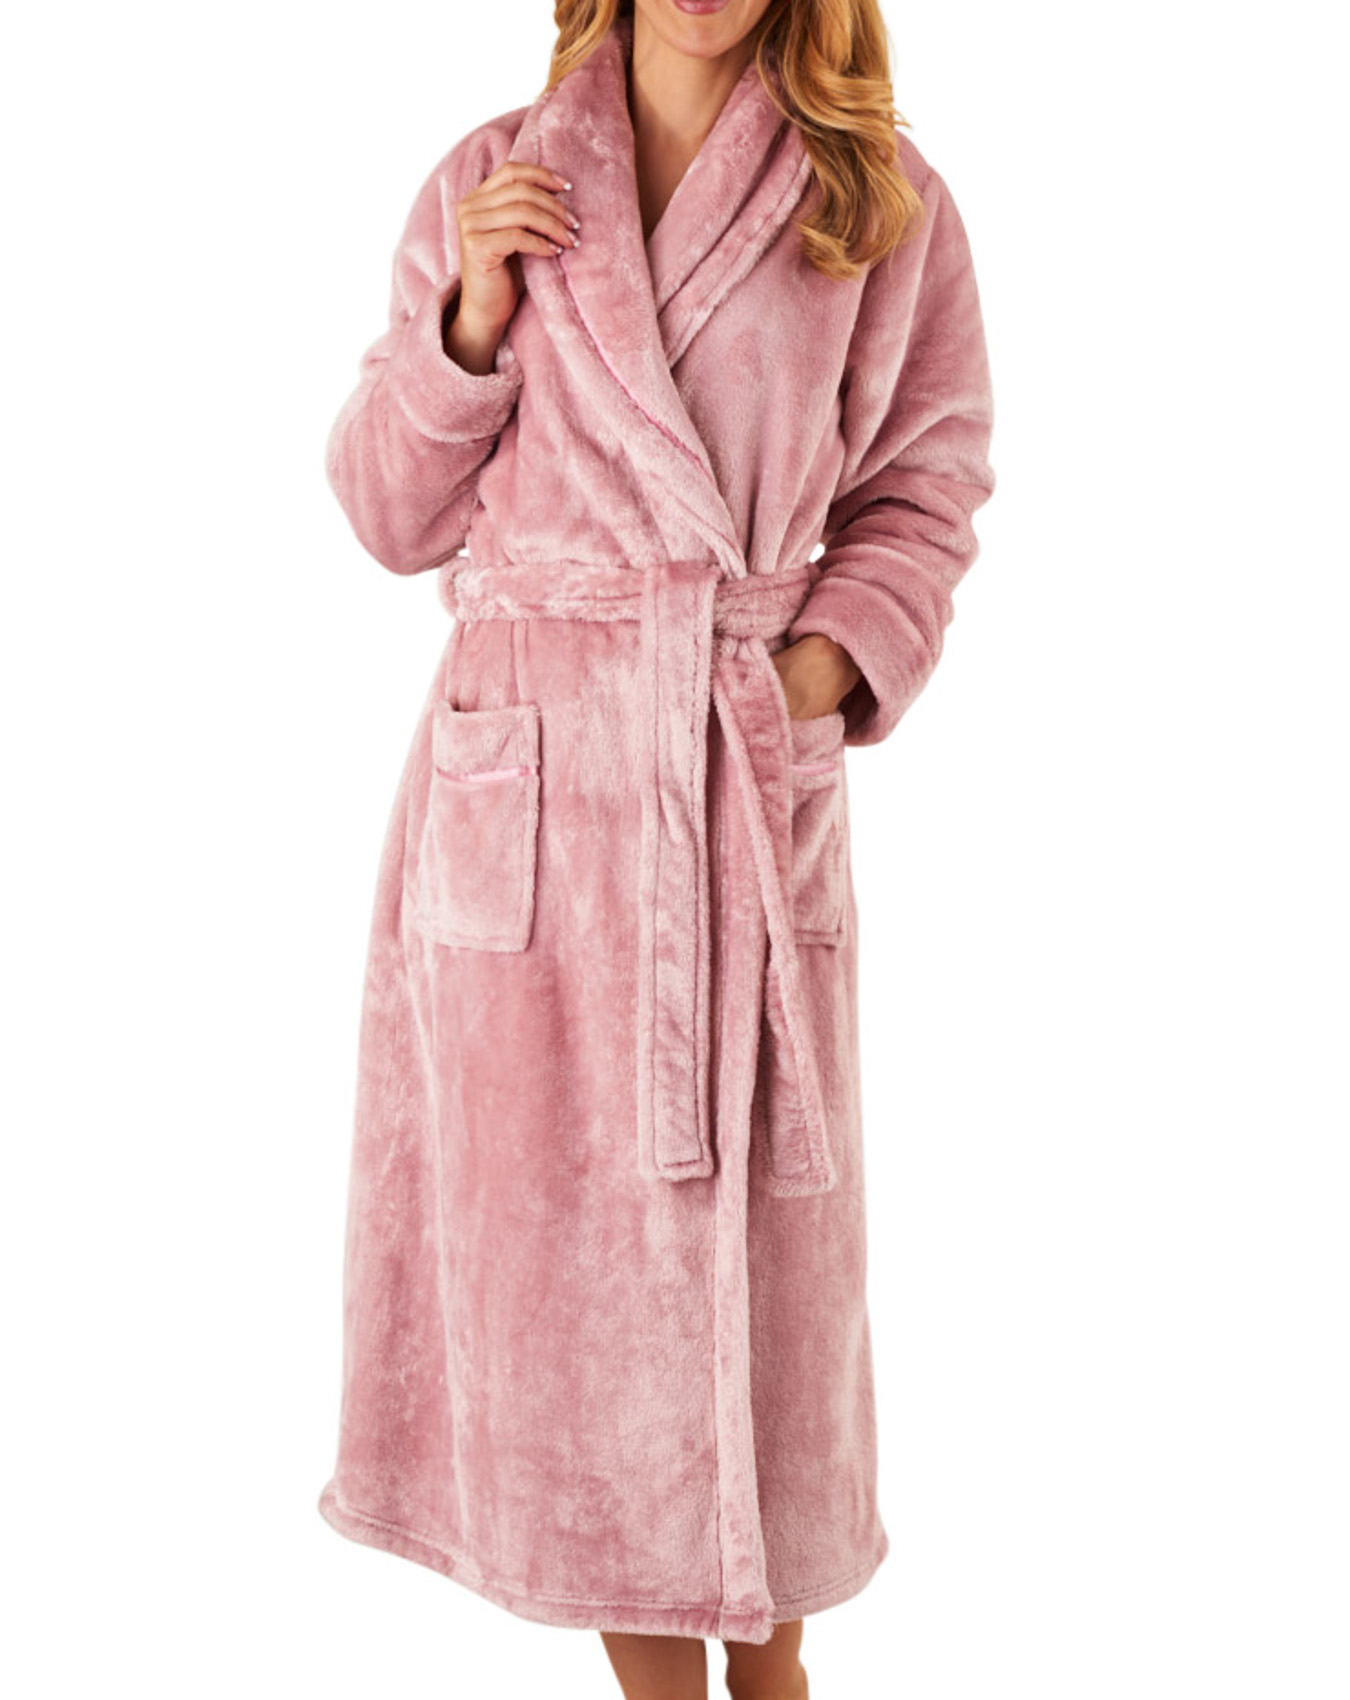 2fc8c8fa16 Dressing Gown Super Soft Flannel Fleece Ladies Shawl Collar Slenderella  Bathrobe